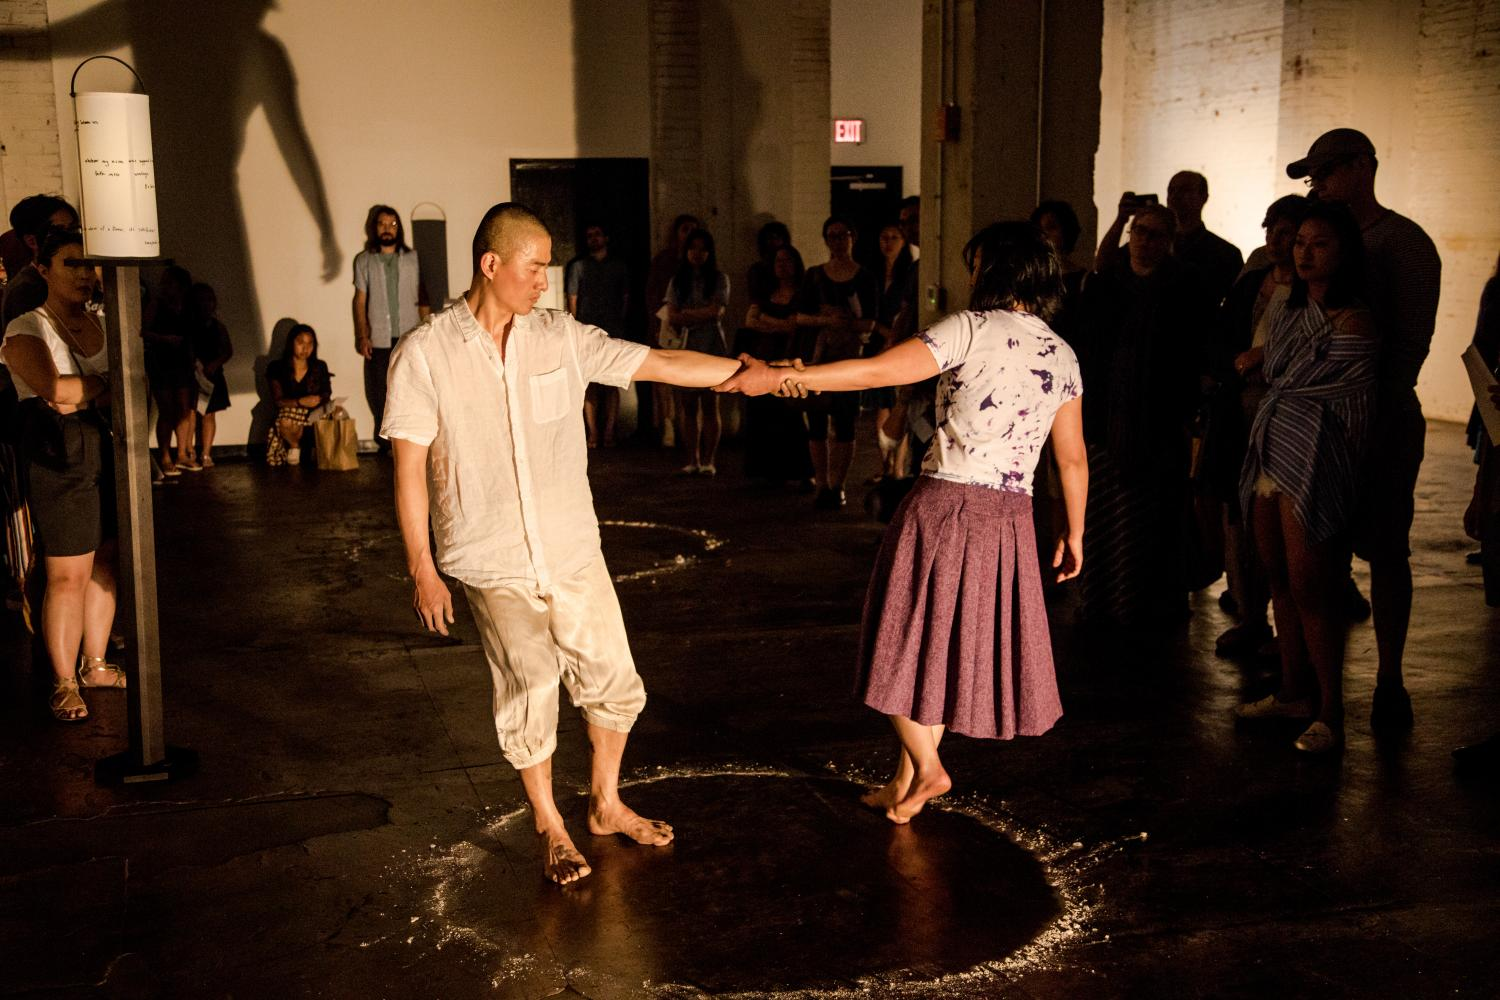 Two dancers within a circle of salt holding each other's right arms. Behind them is a crowd of audience members watching. They are in a dimply lit warehouse space. - (ex)CHANGE - Peace Light performance - Juliette Sueyeun Lee with Jungwoong Kim